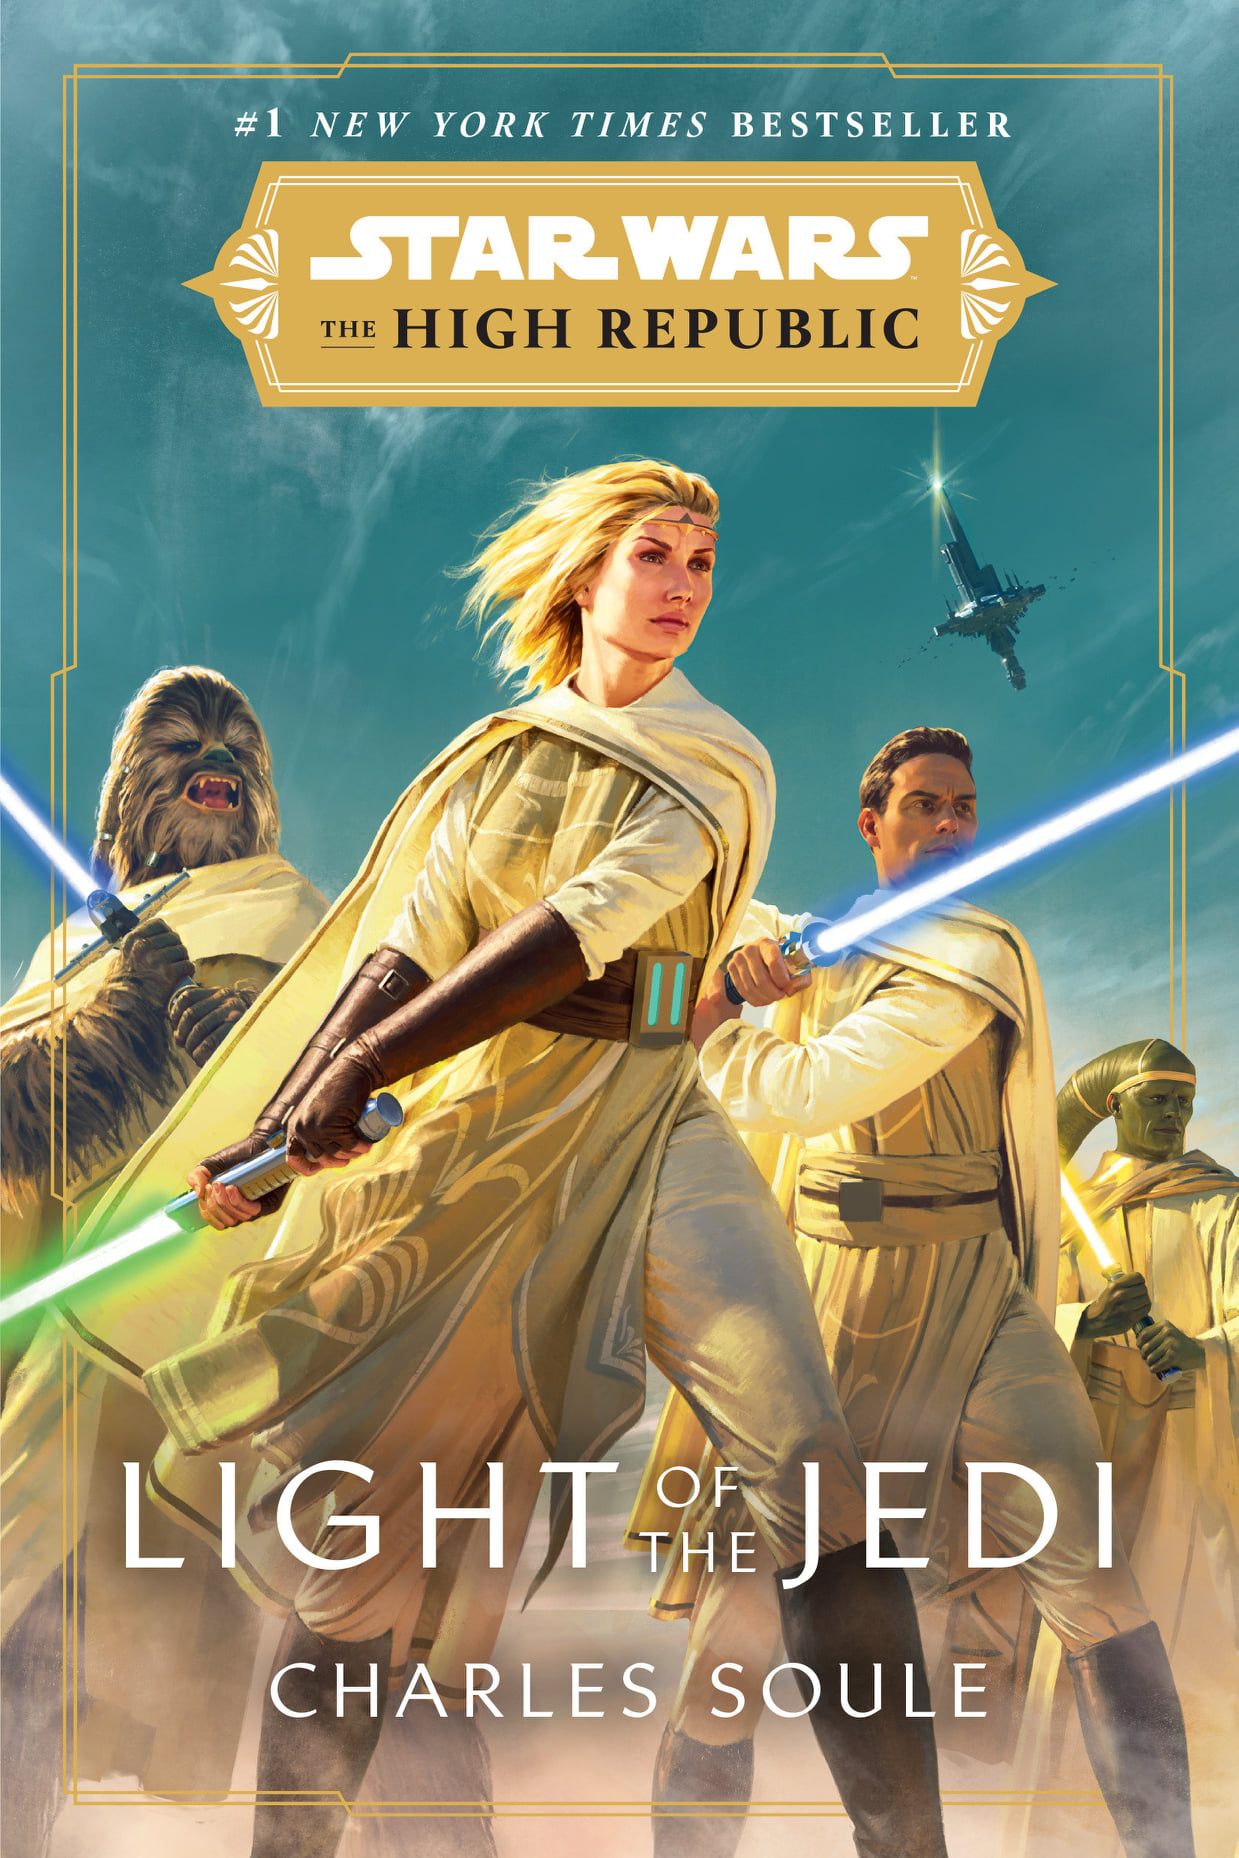 Star Wars The High Republic: Light of the Jedi (paperback)